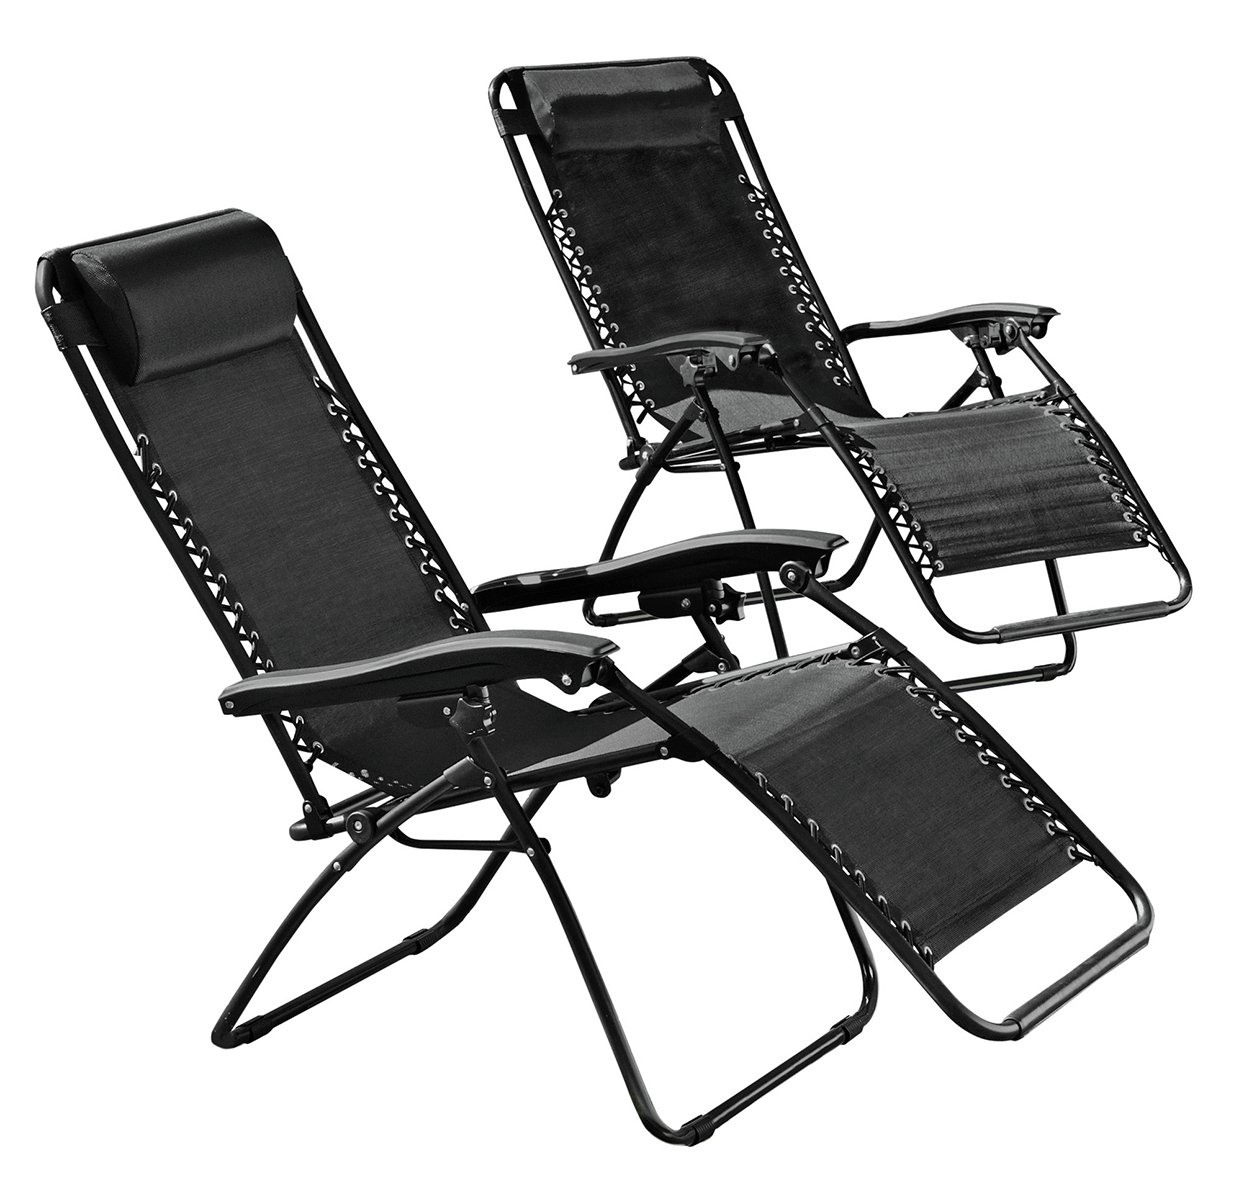 HOME Reclining Sun Loungers - Set of 2  sc 1 st  Argos & Buy HOME Reclining Sun Loungers - Set of 2 at Argos.co.uk - Your ... islam-shia.org